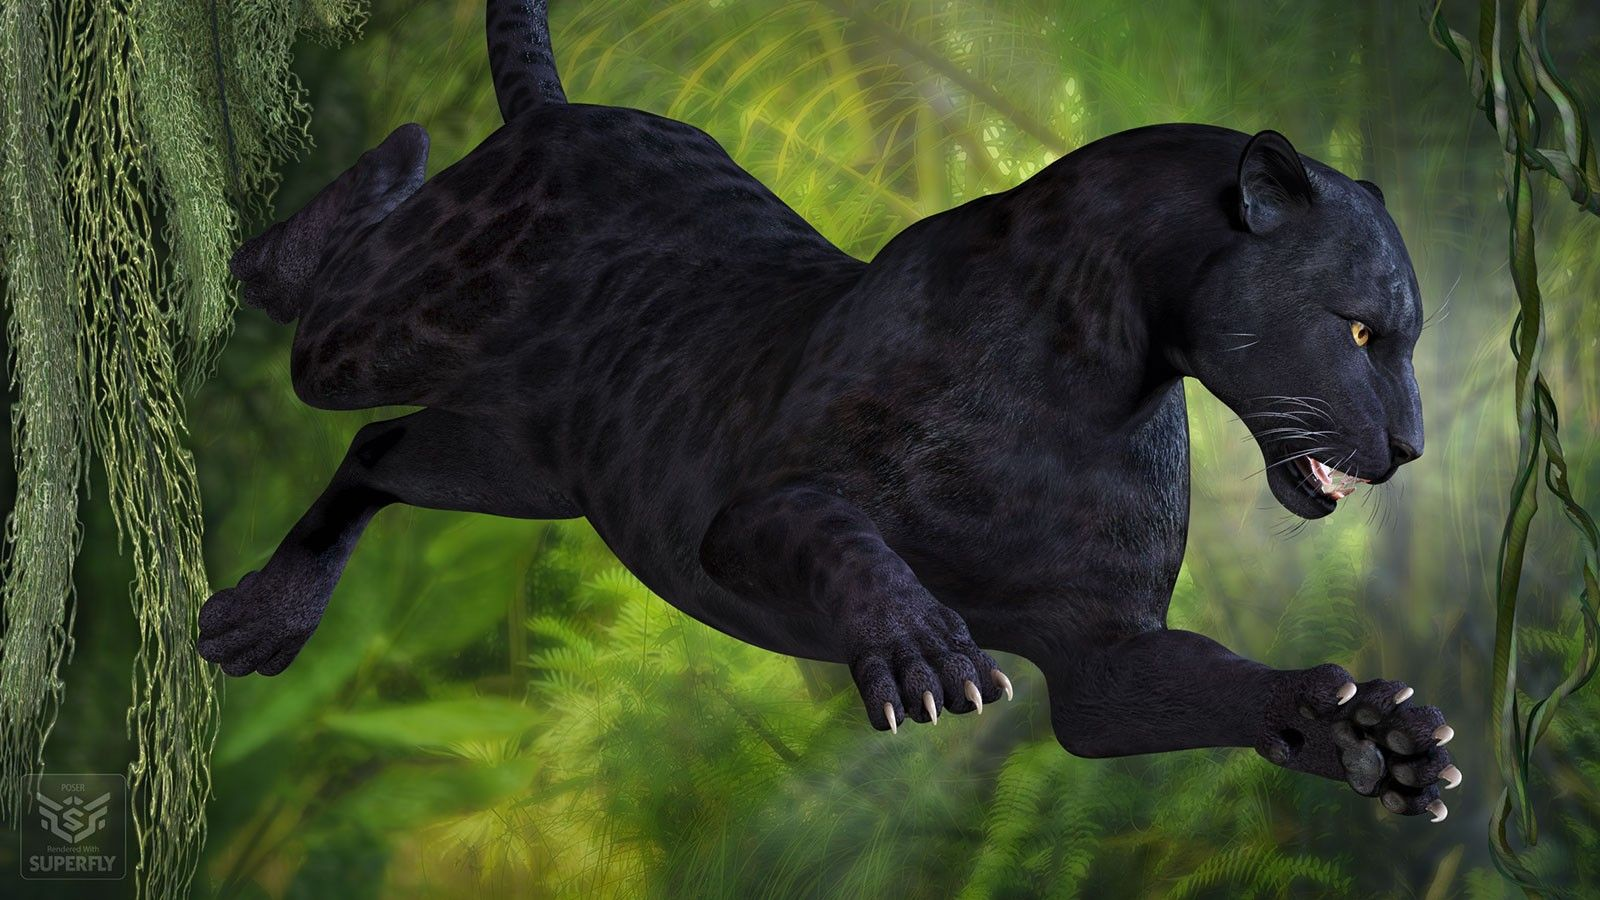 CWRW Black Panther For HWD Big Cat D Models And D Software By - Fascinating 3d renderings of people and animals by maxim shkret